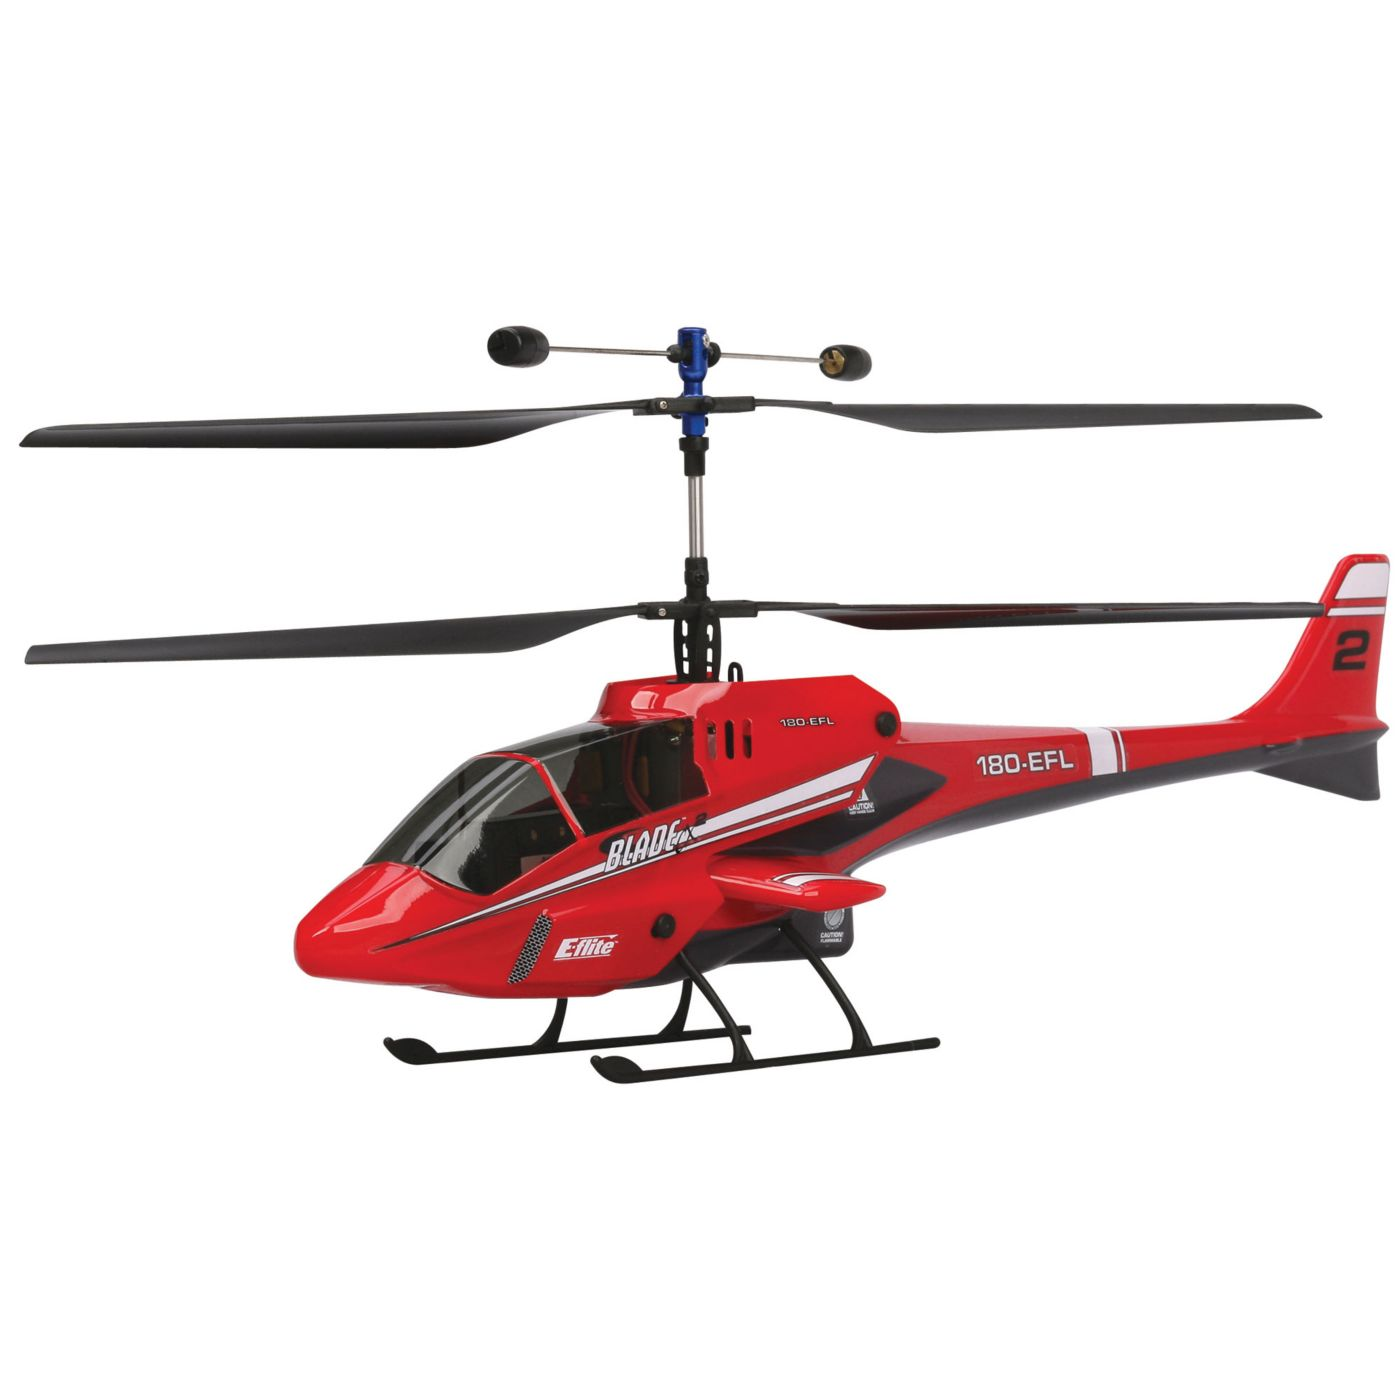 blade cx2 rtf electric coaxial micro helicopter horizonhobbyimage for blade cx2 rtf electric coaxial micro helicopter from horizonhobby